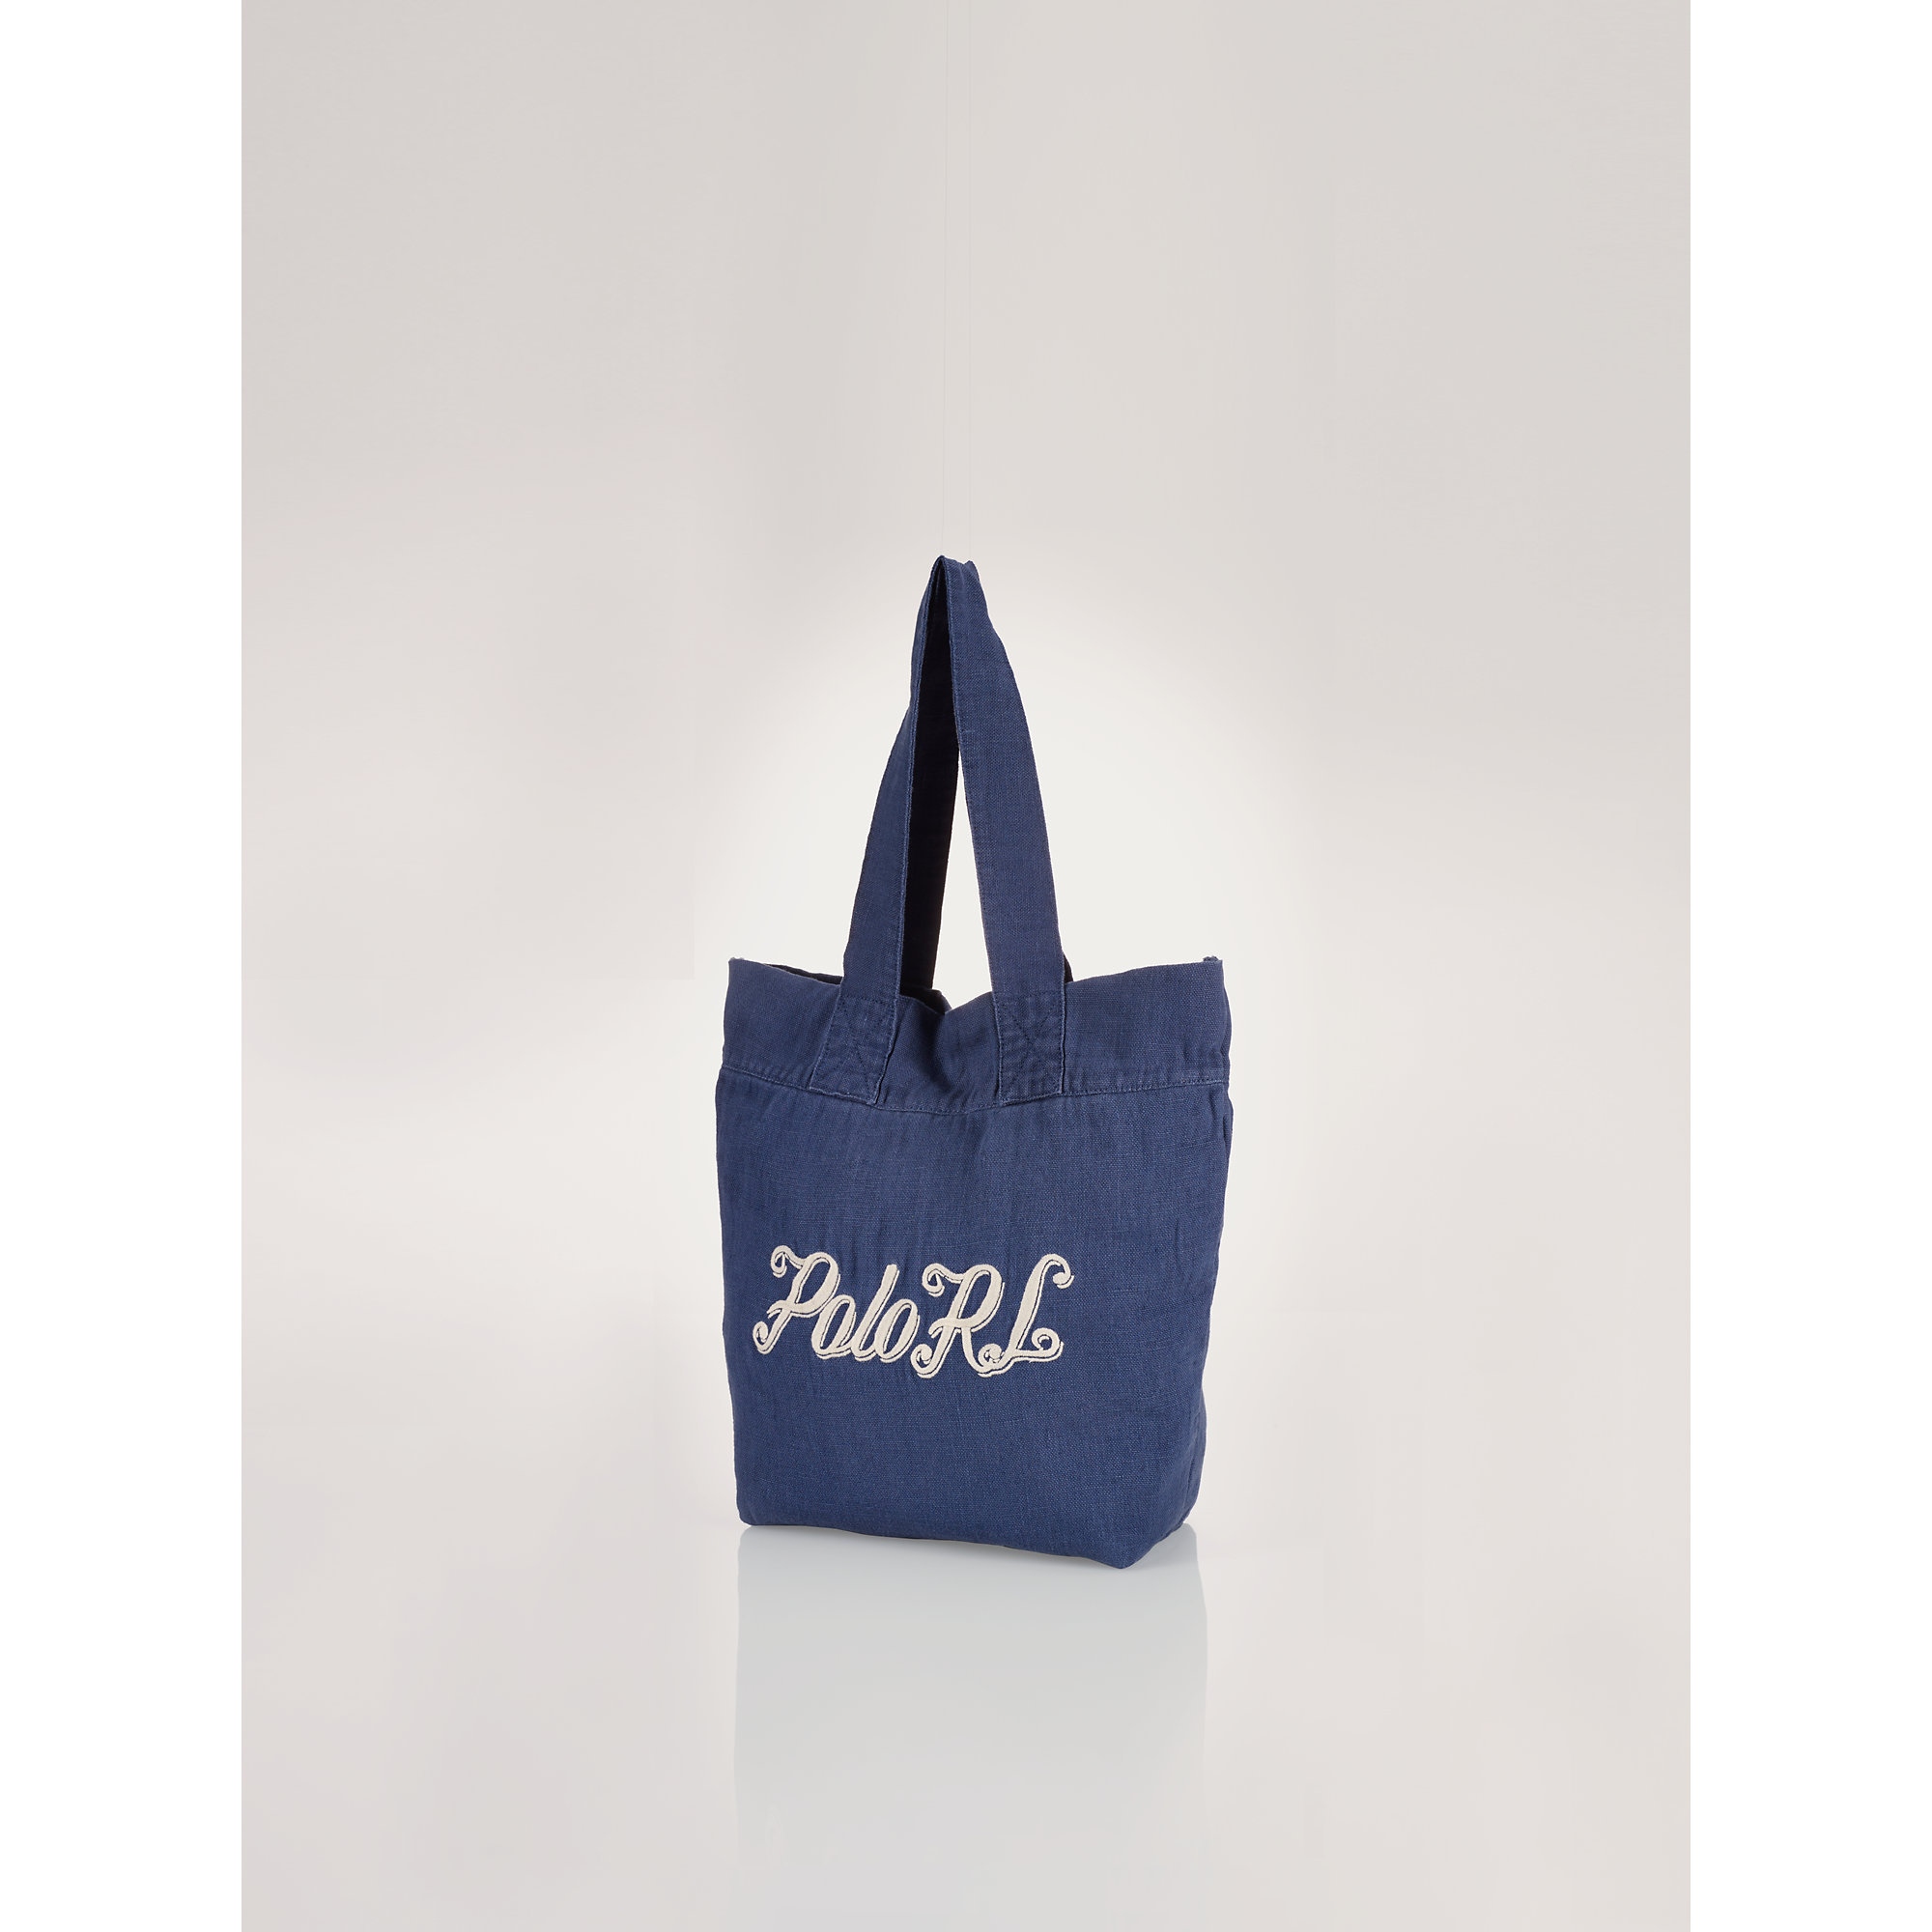 Polo ralph lauren Beach Tote in Blue | Lyst